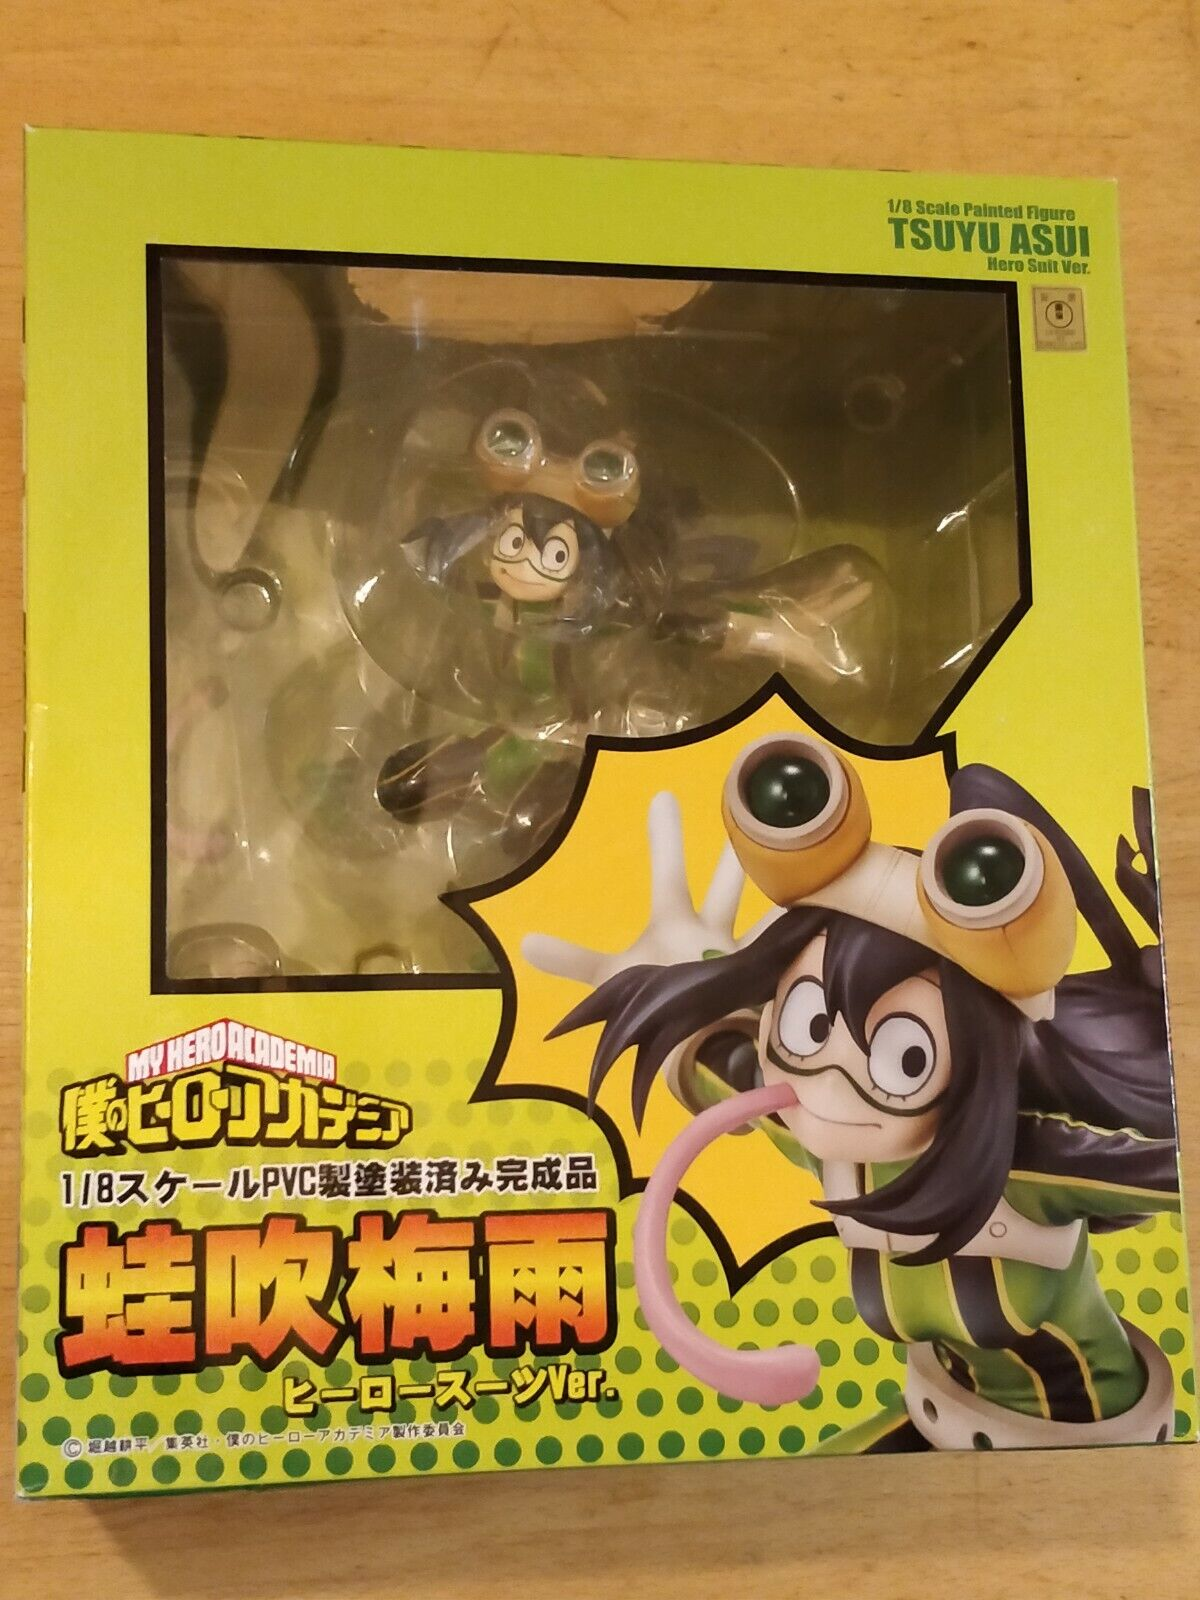 MY HERO ACADEMIA TSUYU ASUI FROPPY HERO SUIT SUIT SUIT VER. 1 8 COMPLETE FIGURE - SEALED a21